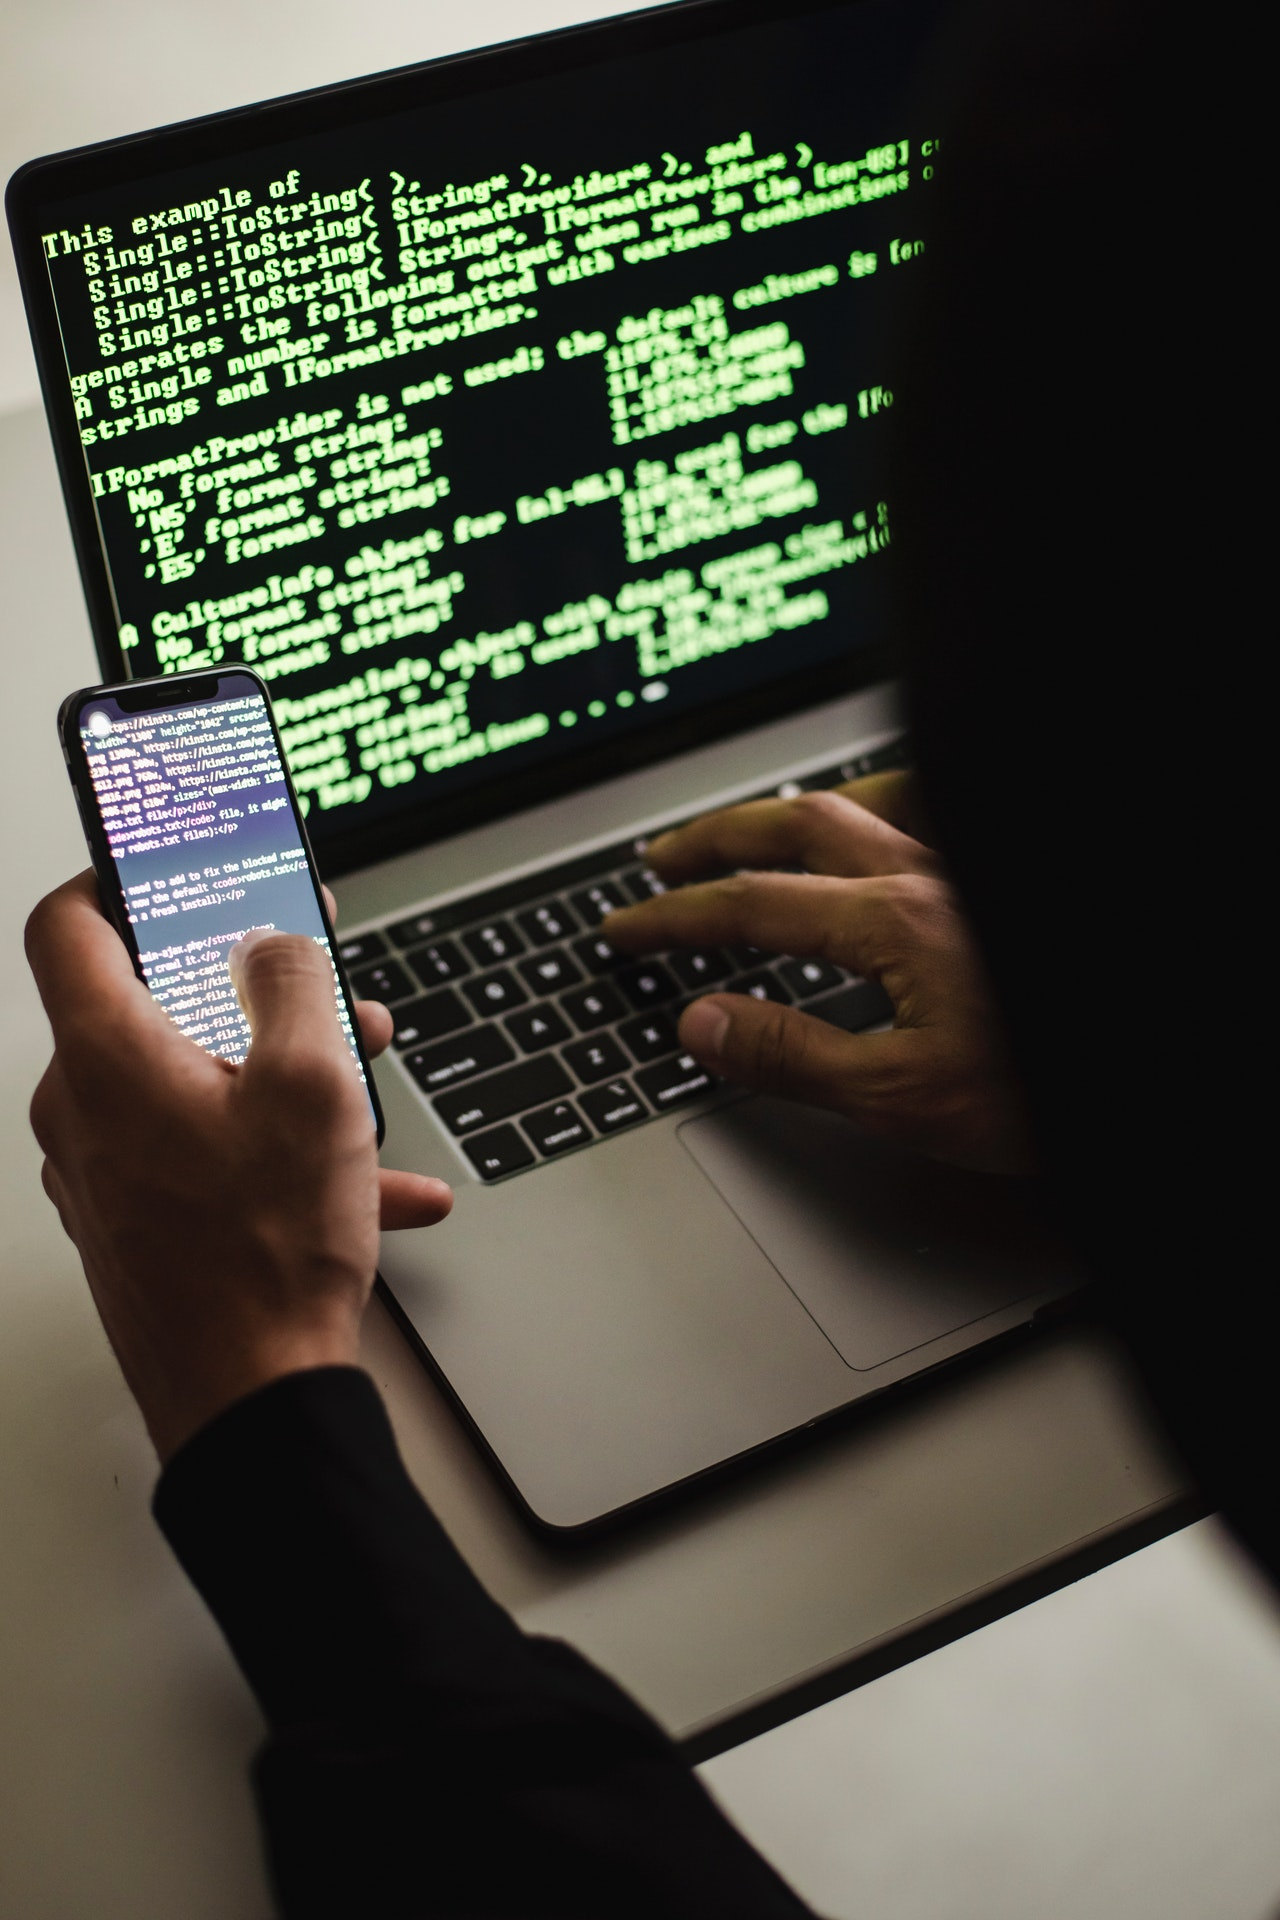 Protect Business Cybercriminals Article Image